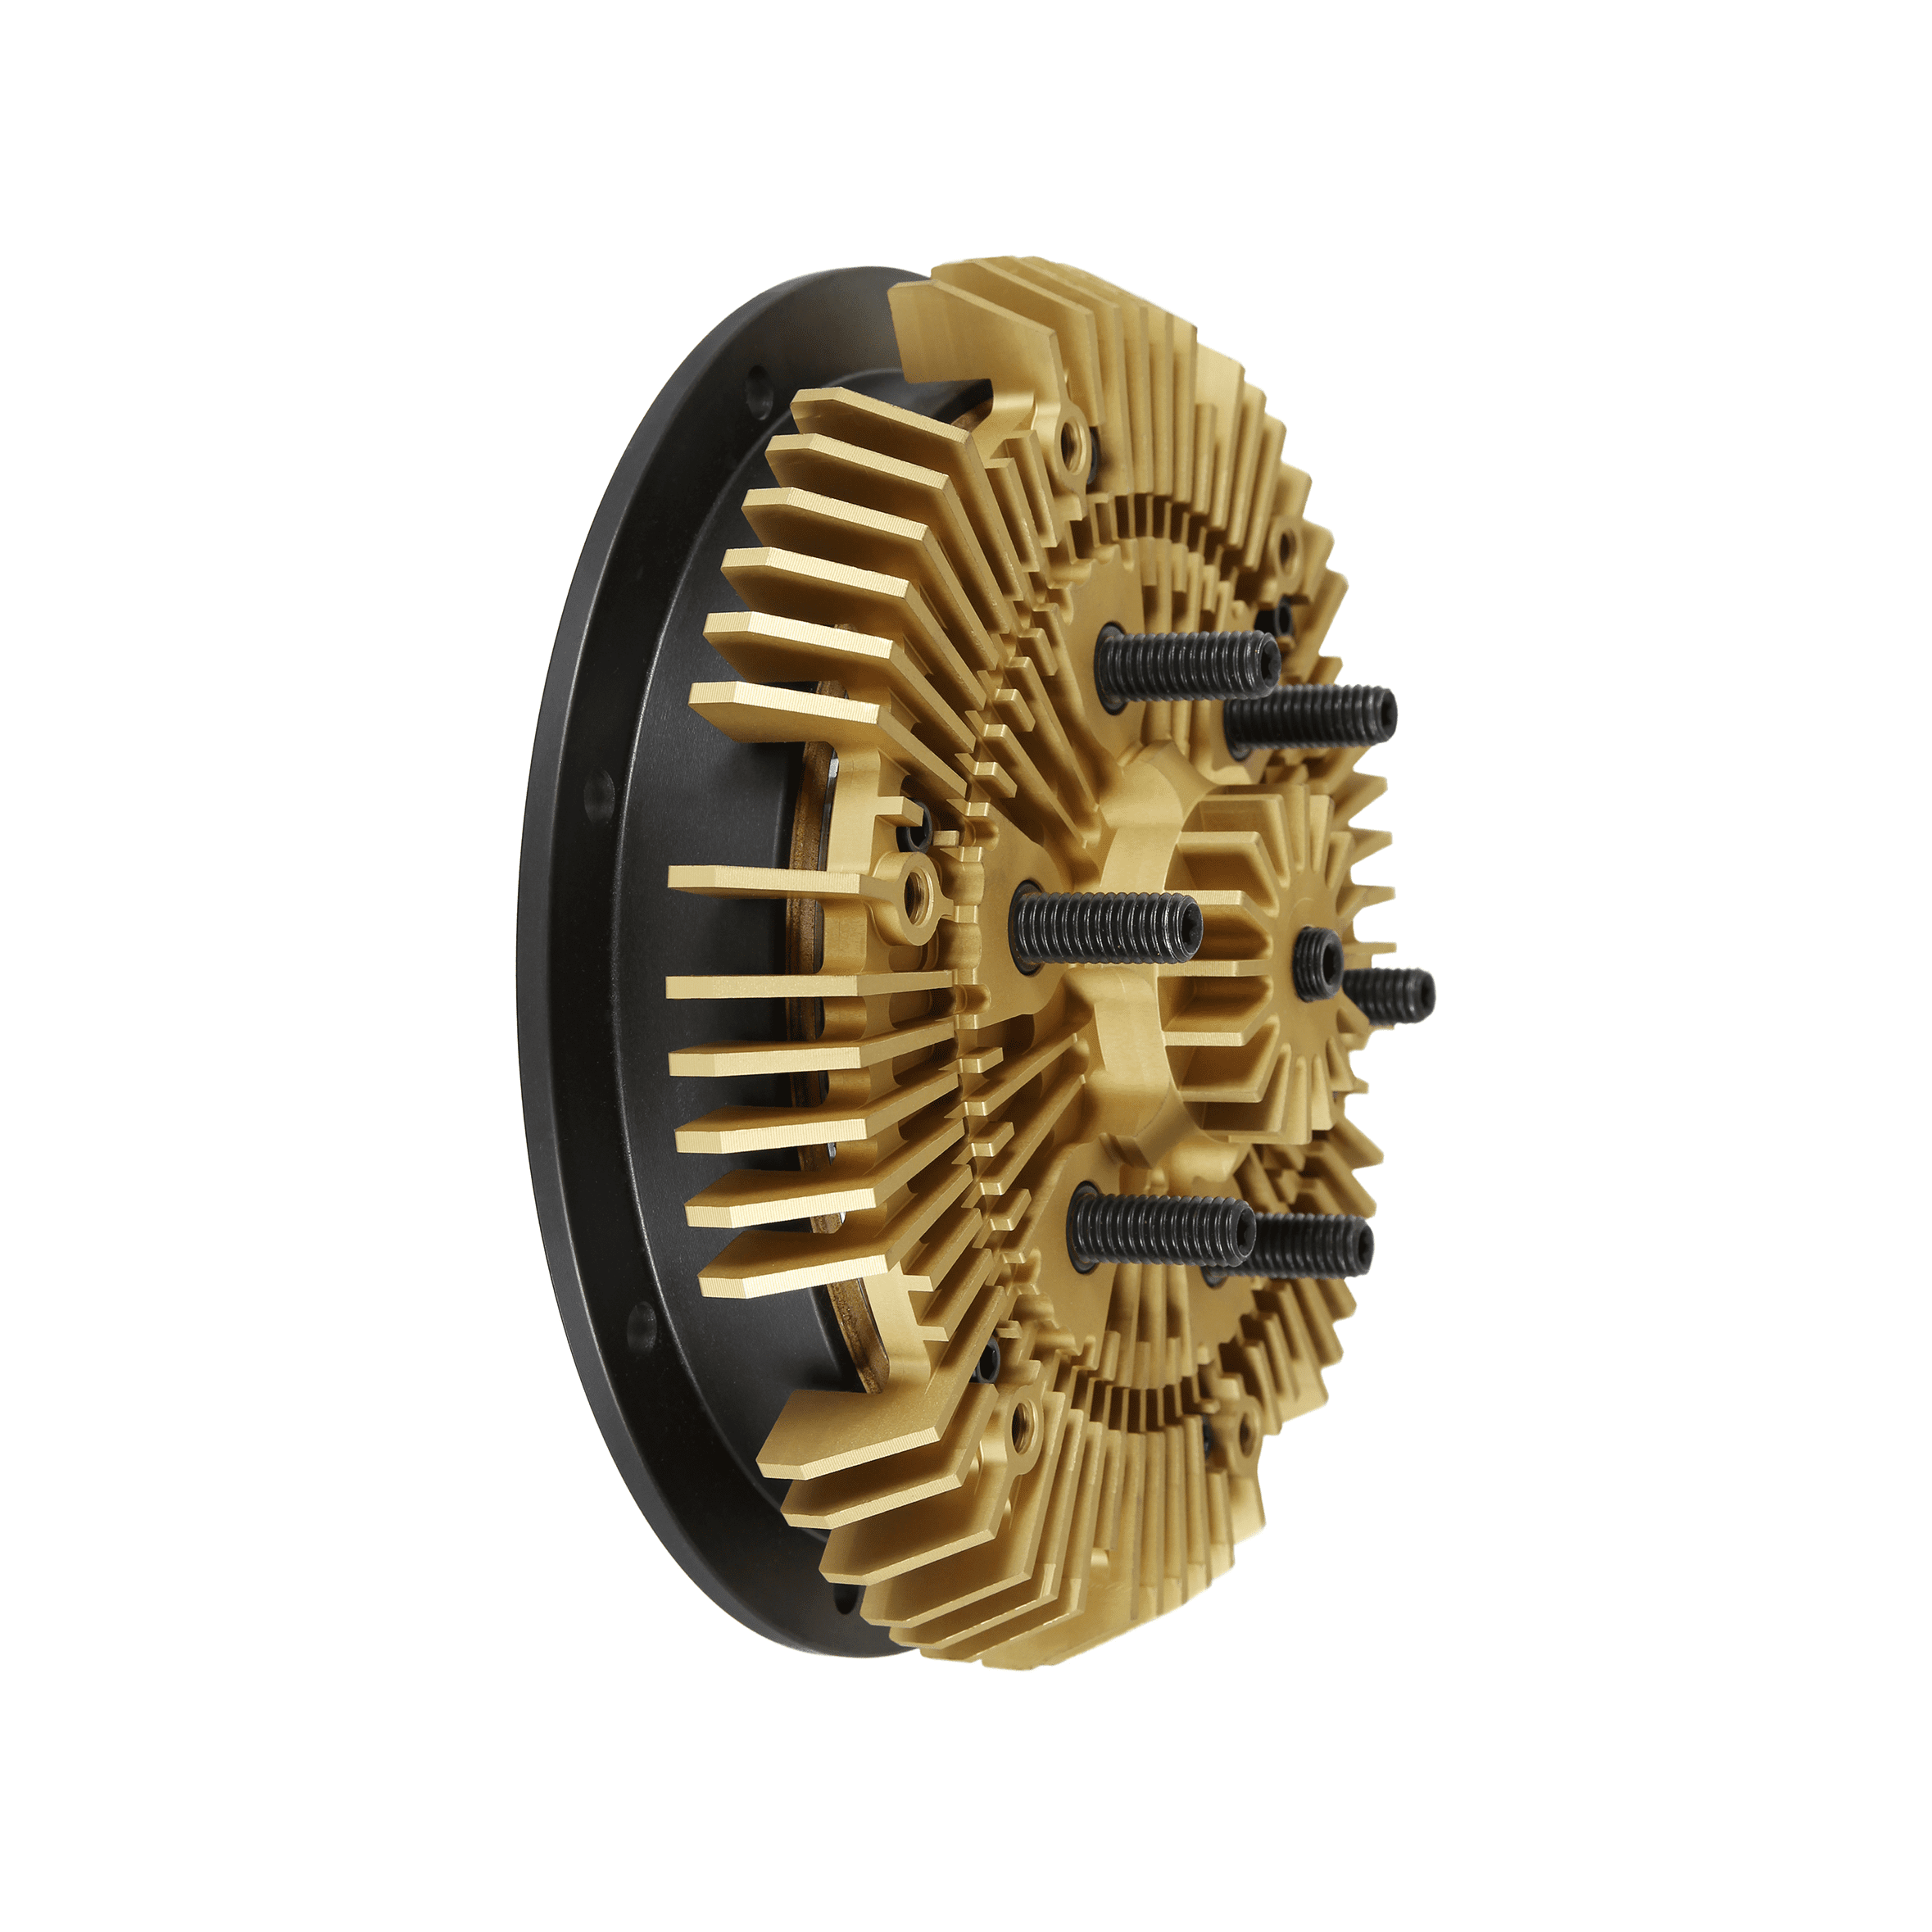 24-256 Kit Masters 2-Speed Gold Top Fan Clutch Rebuild Kit for 2 56'' pilot  with 2 Pulley Bearings